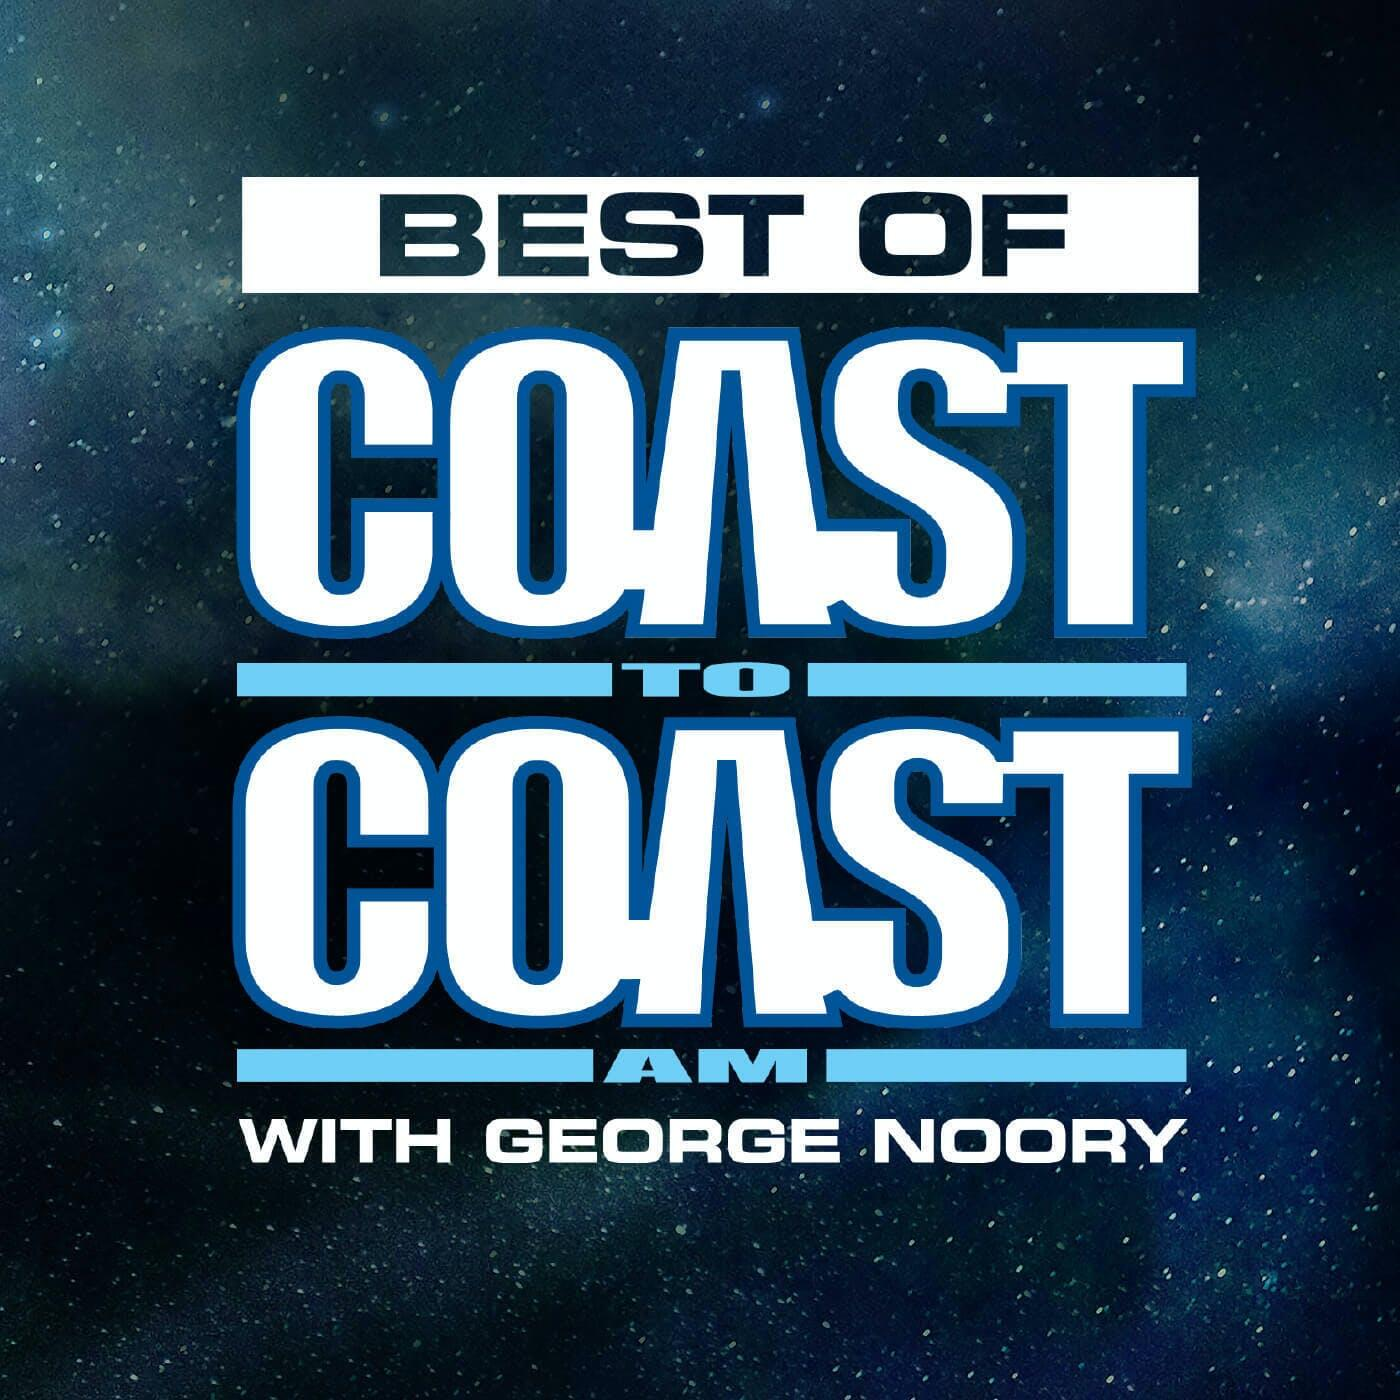 Listen to the The Best of Coast to Coast AM Episode - Spiritual Healing - Best of Coast to Coast AM - 11/26/19 on iHeartRadio | iHeartRadio